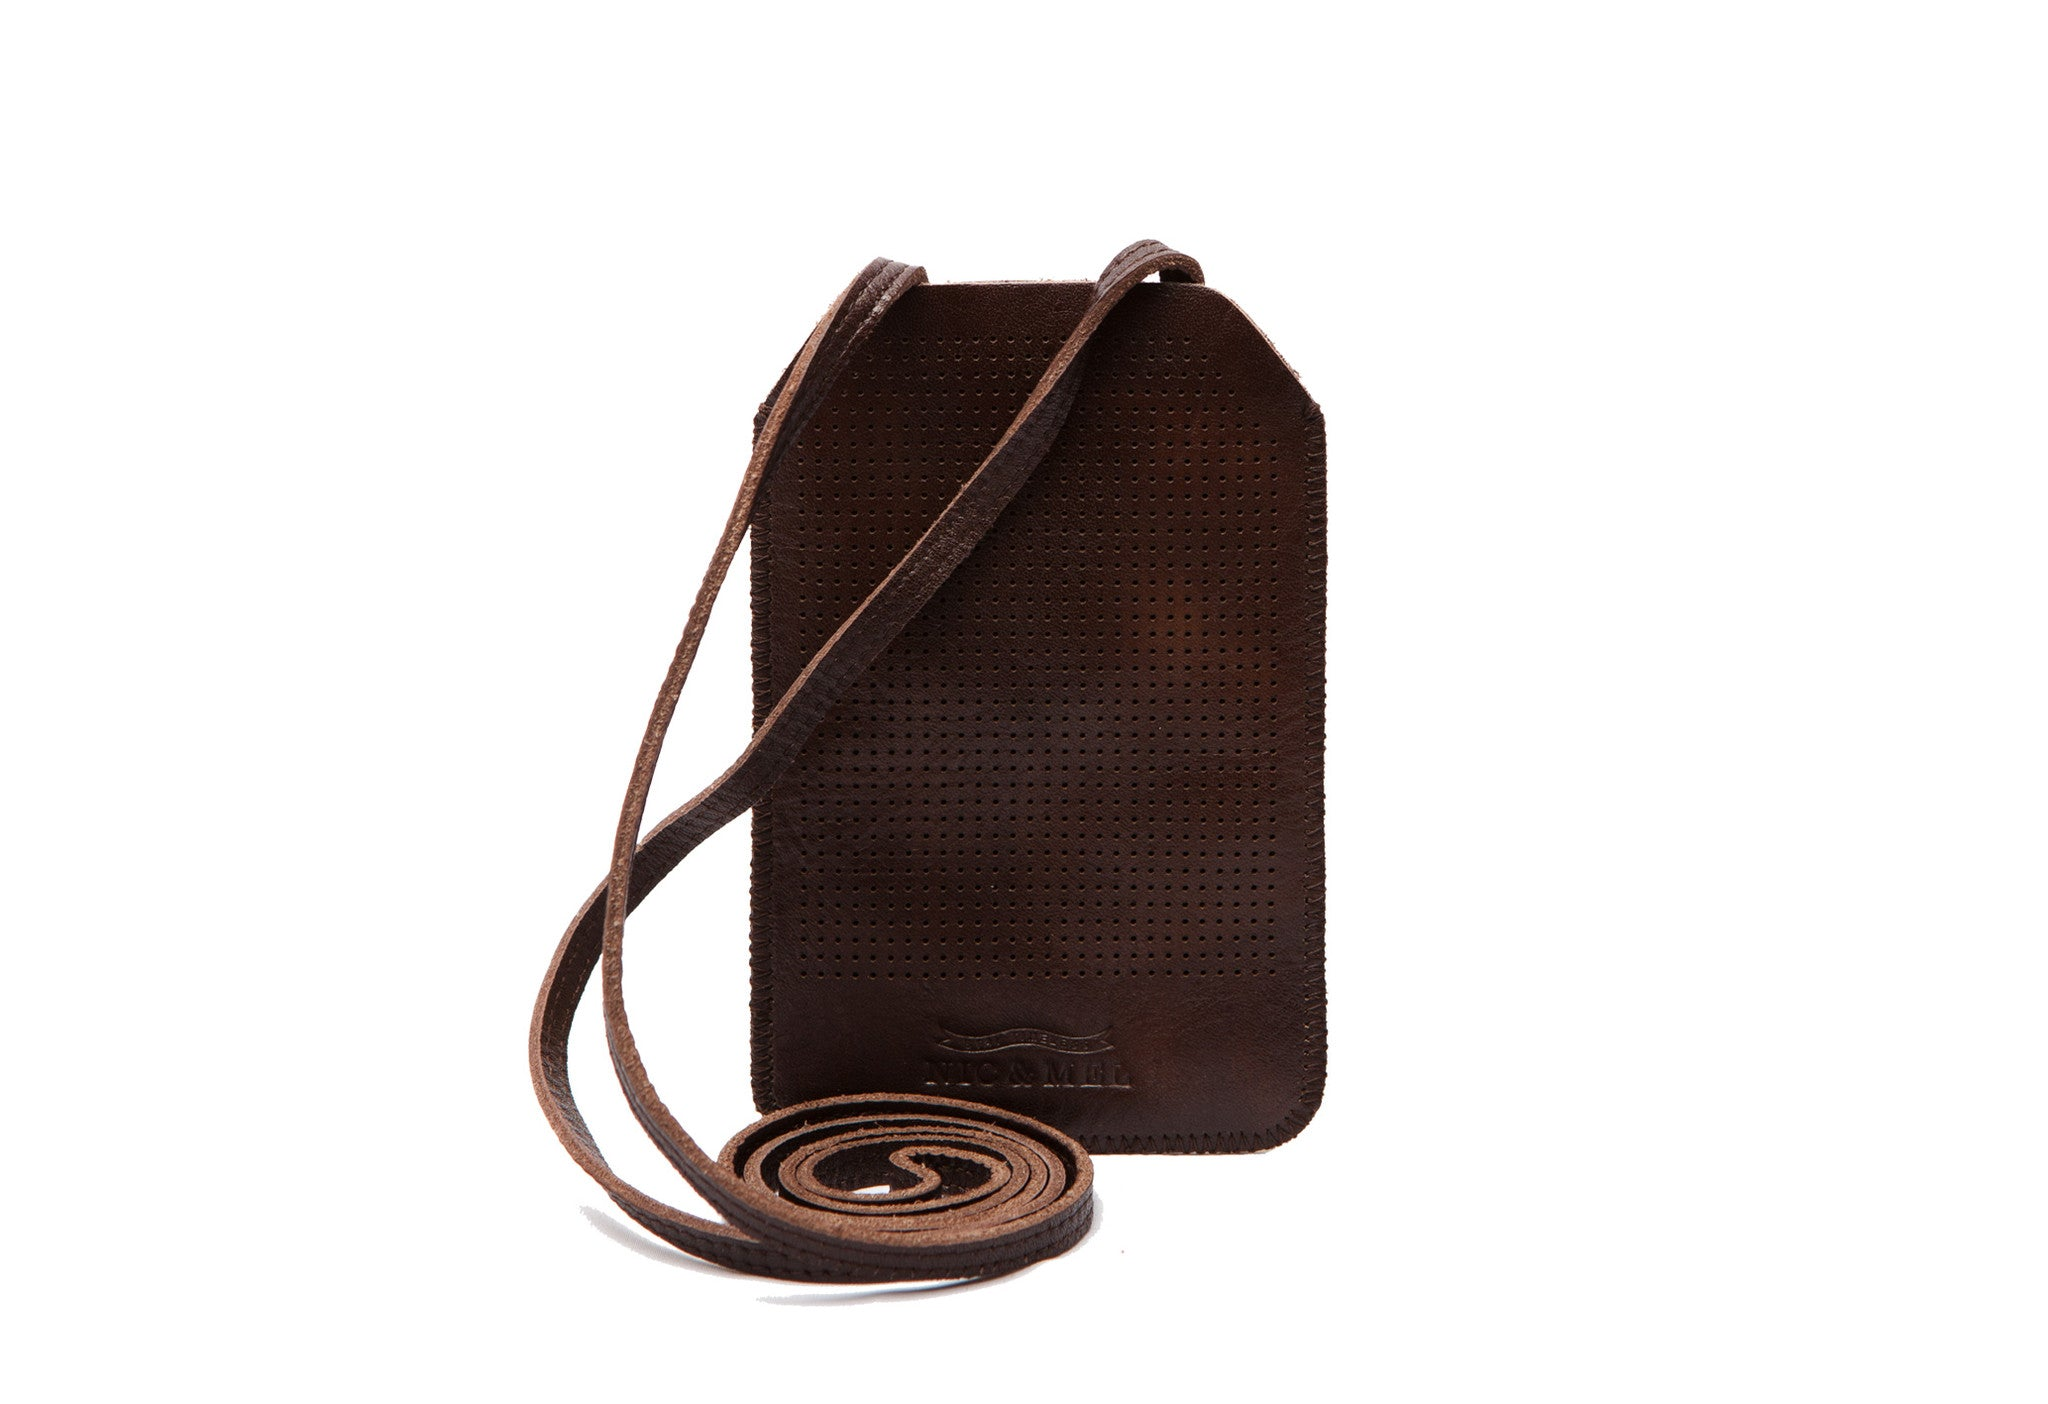 iPhone holder 4 perforated  Dk Brown Strap